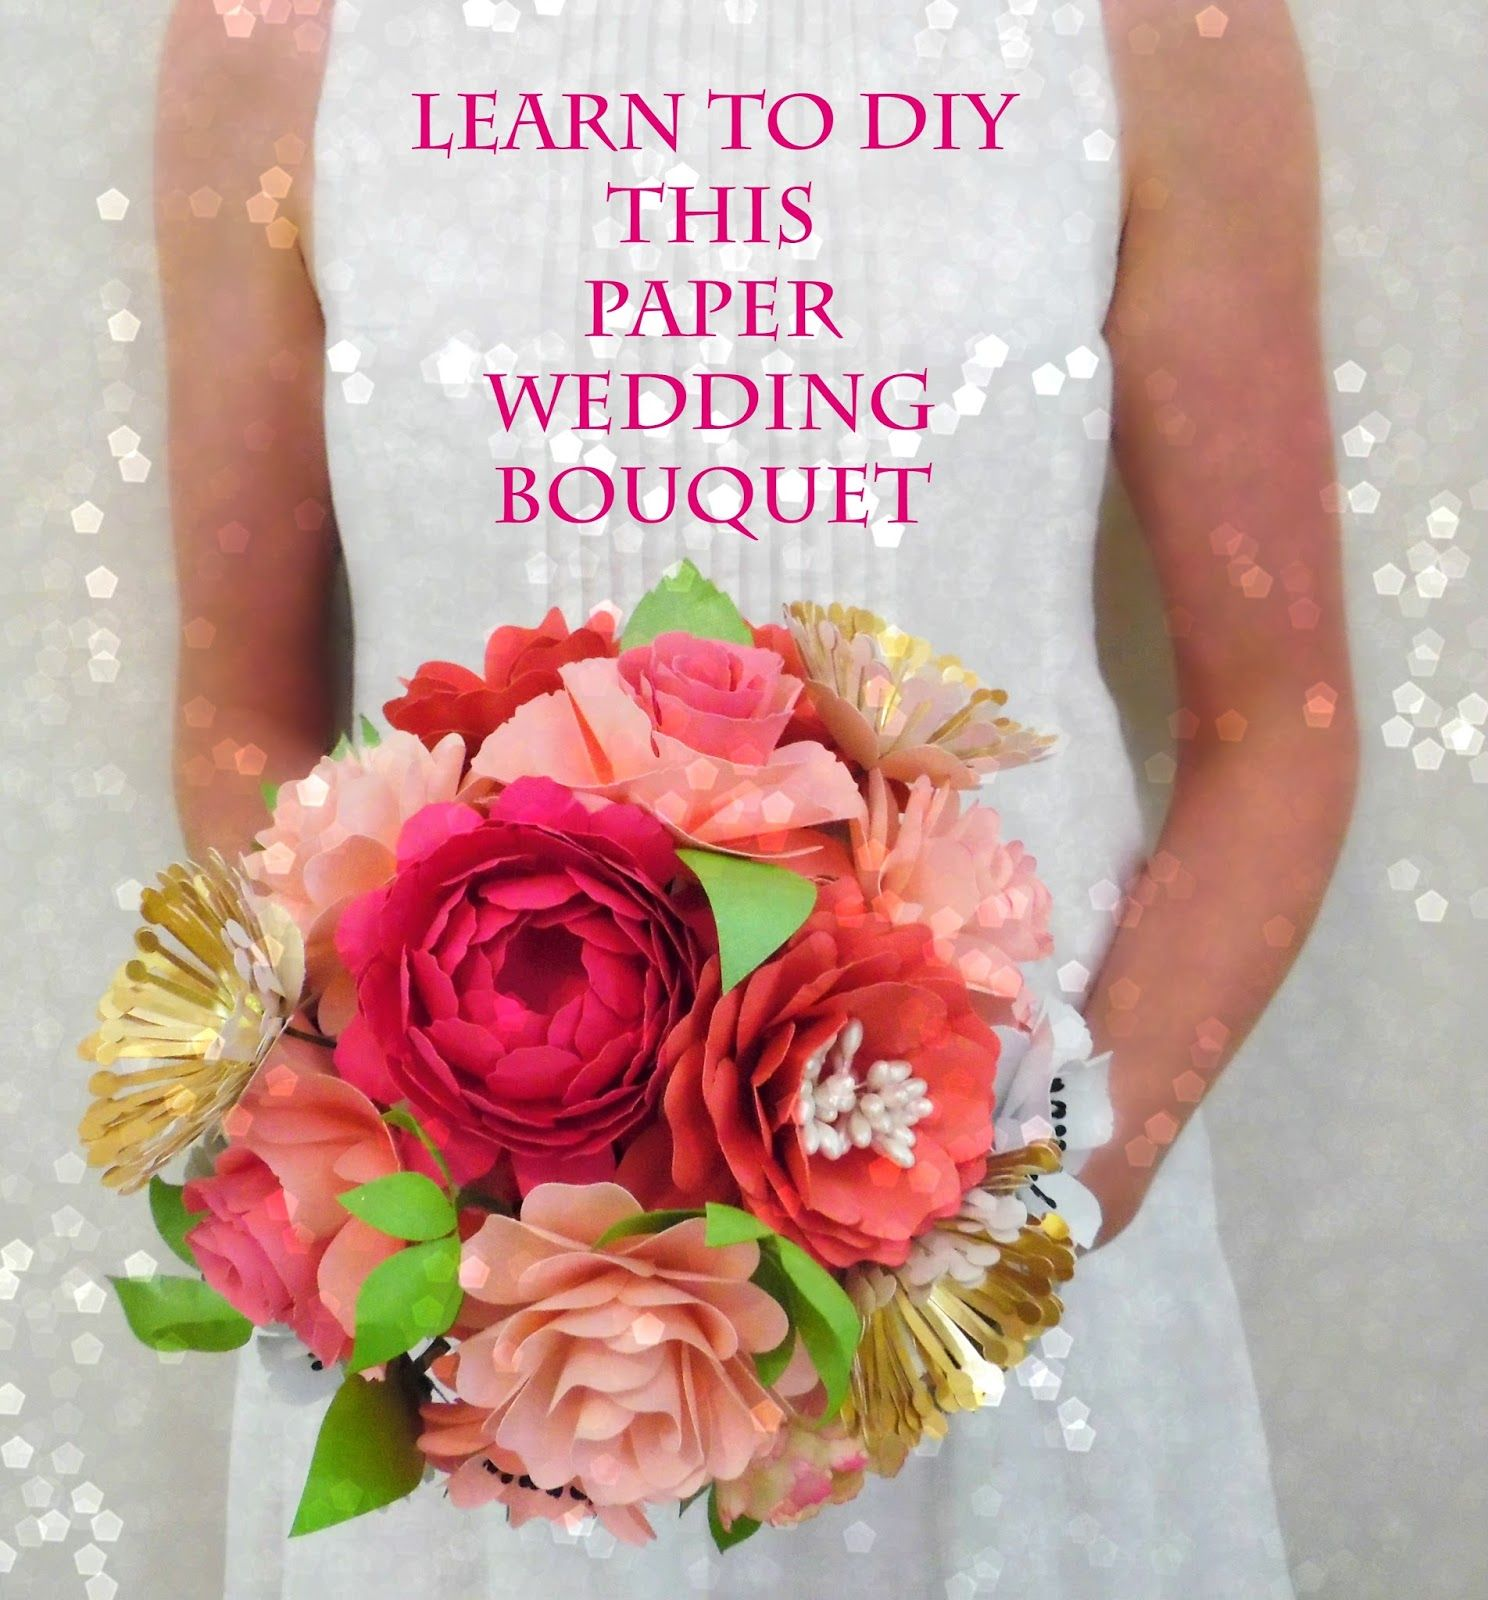 Do You Want To Learn To DIY Your Own Paper Bouquet If You Love Crafting Then